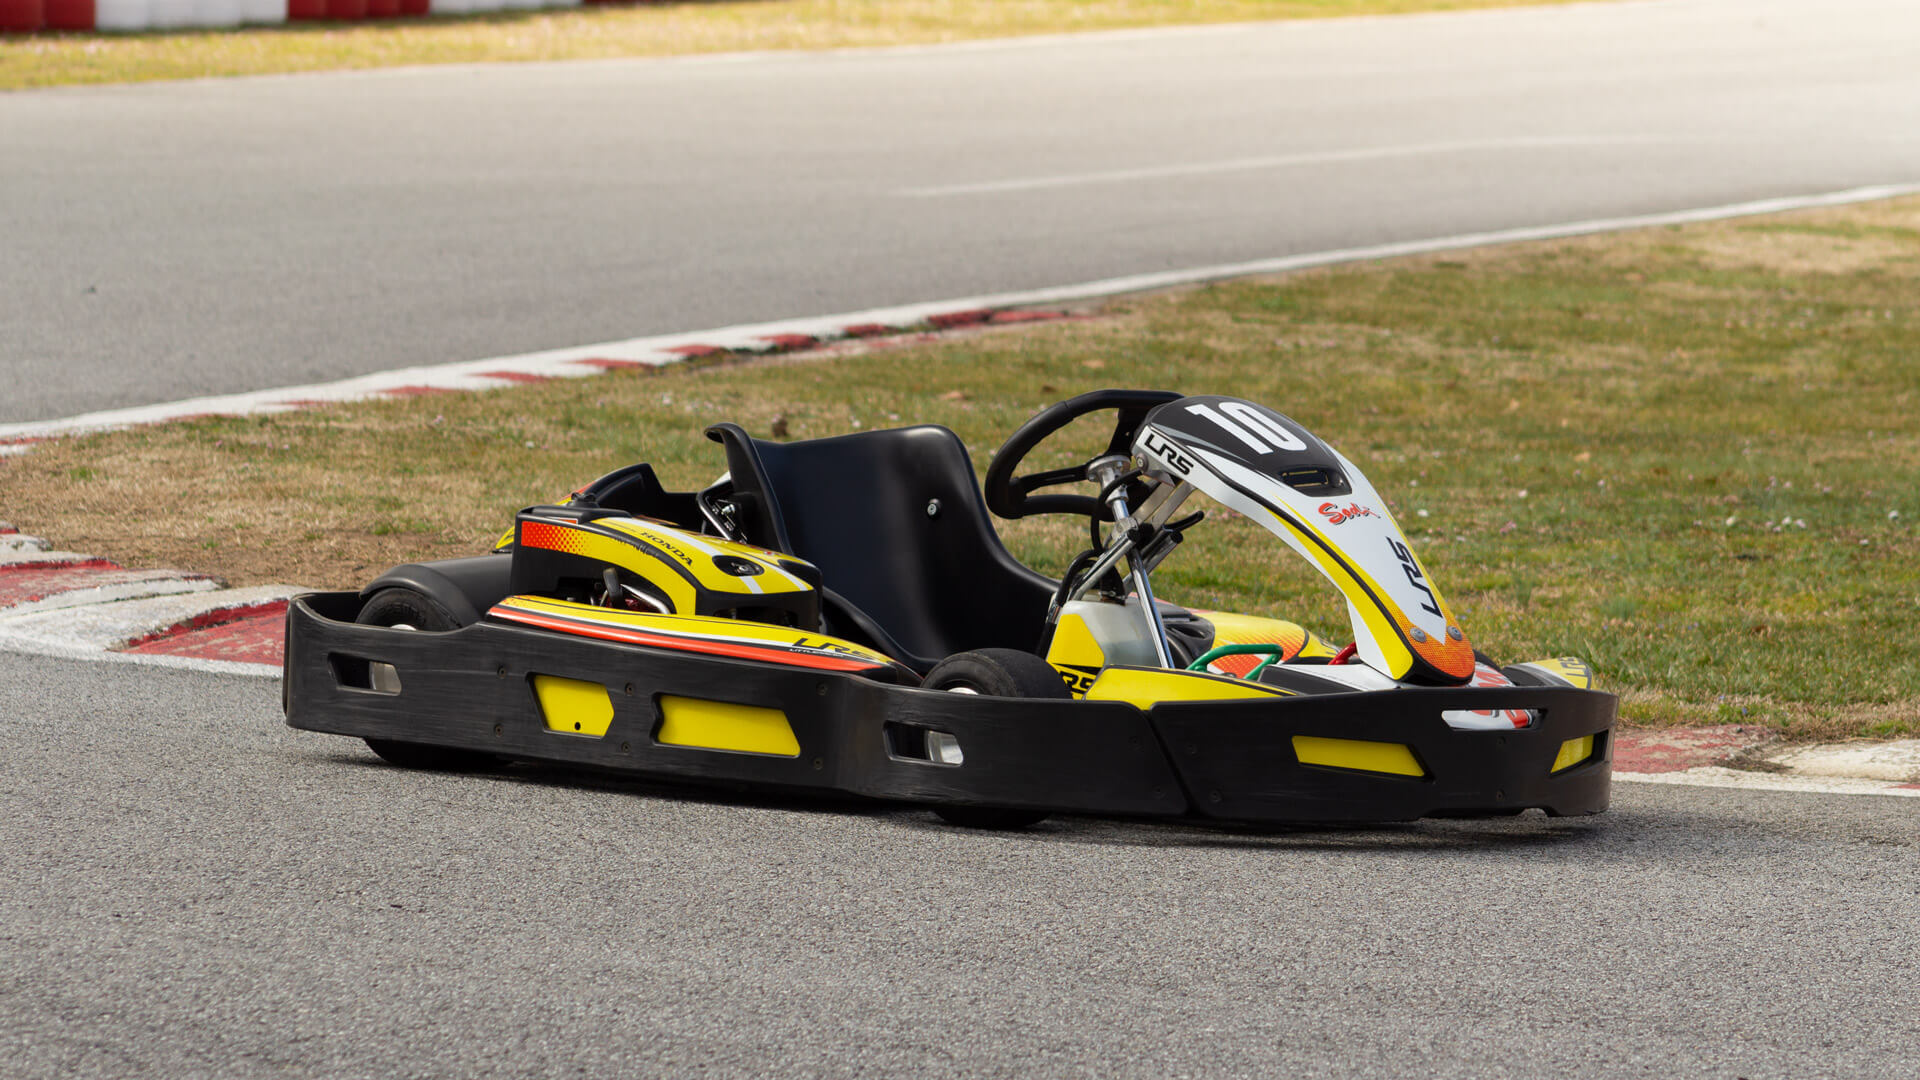 Sodikart LR5 - Junior